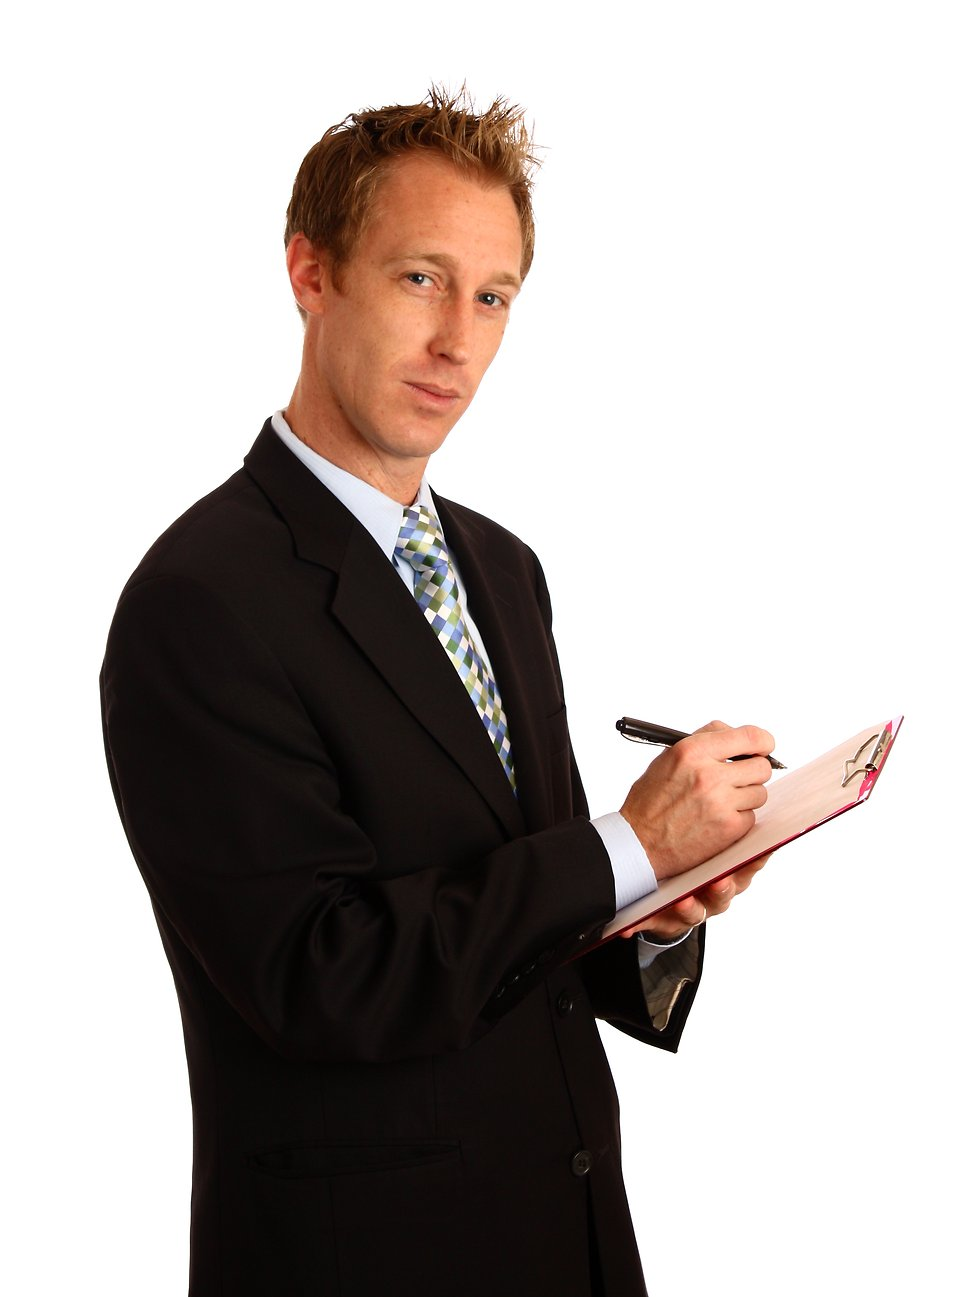 A young businessman holding a clipboard and pen.